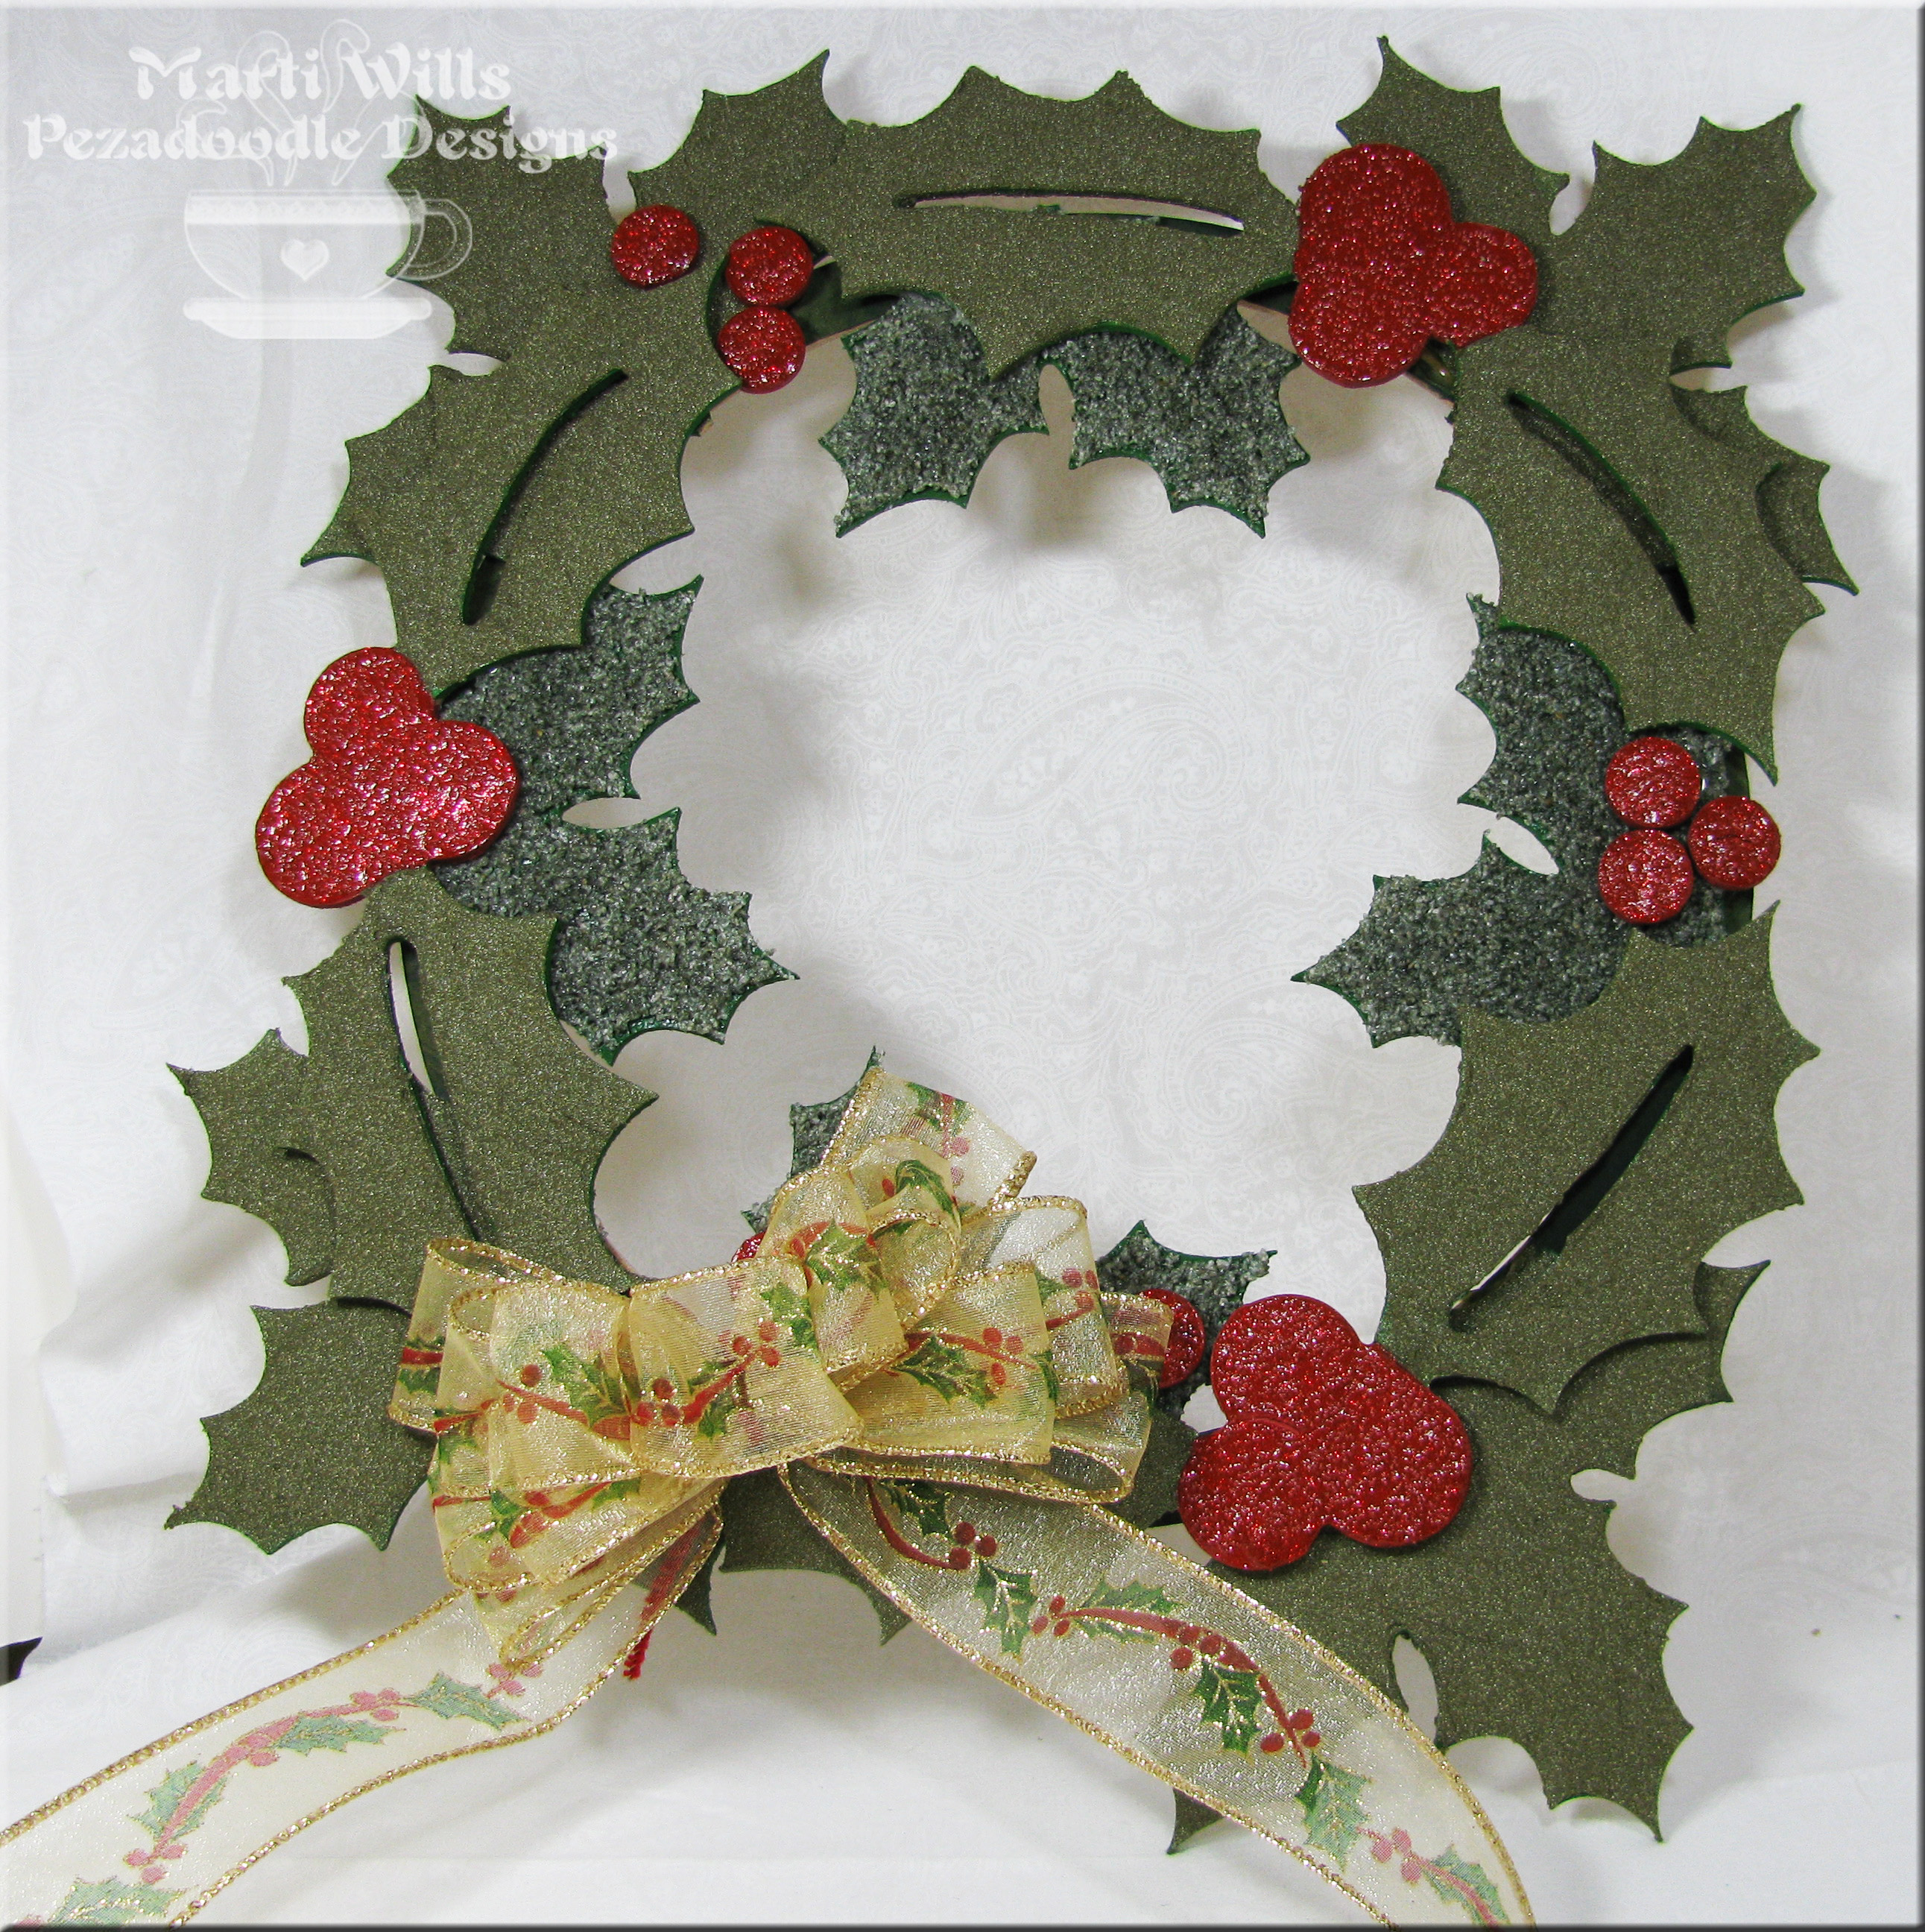 the awesome kaisercraft beyond the page items a wreath lets talk aout that for a minute kaisercraft beyond the page items are awesome home decor - Home Decor Item